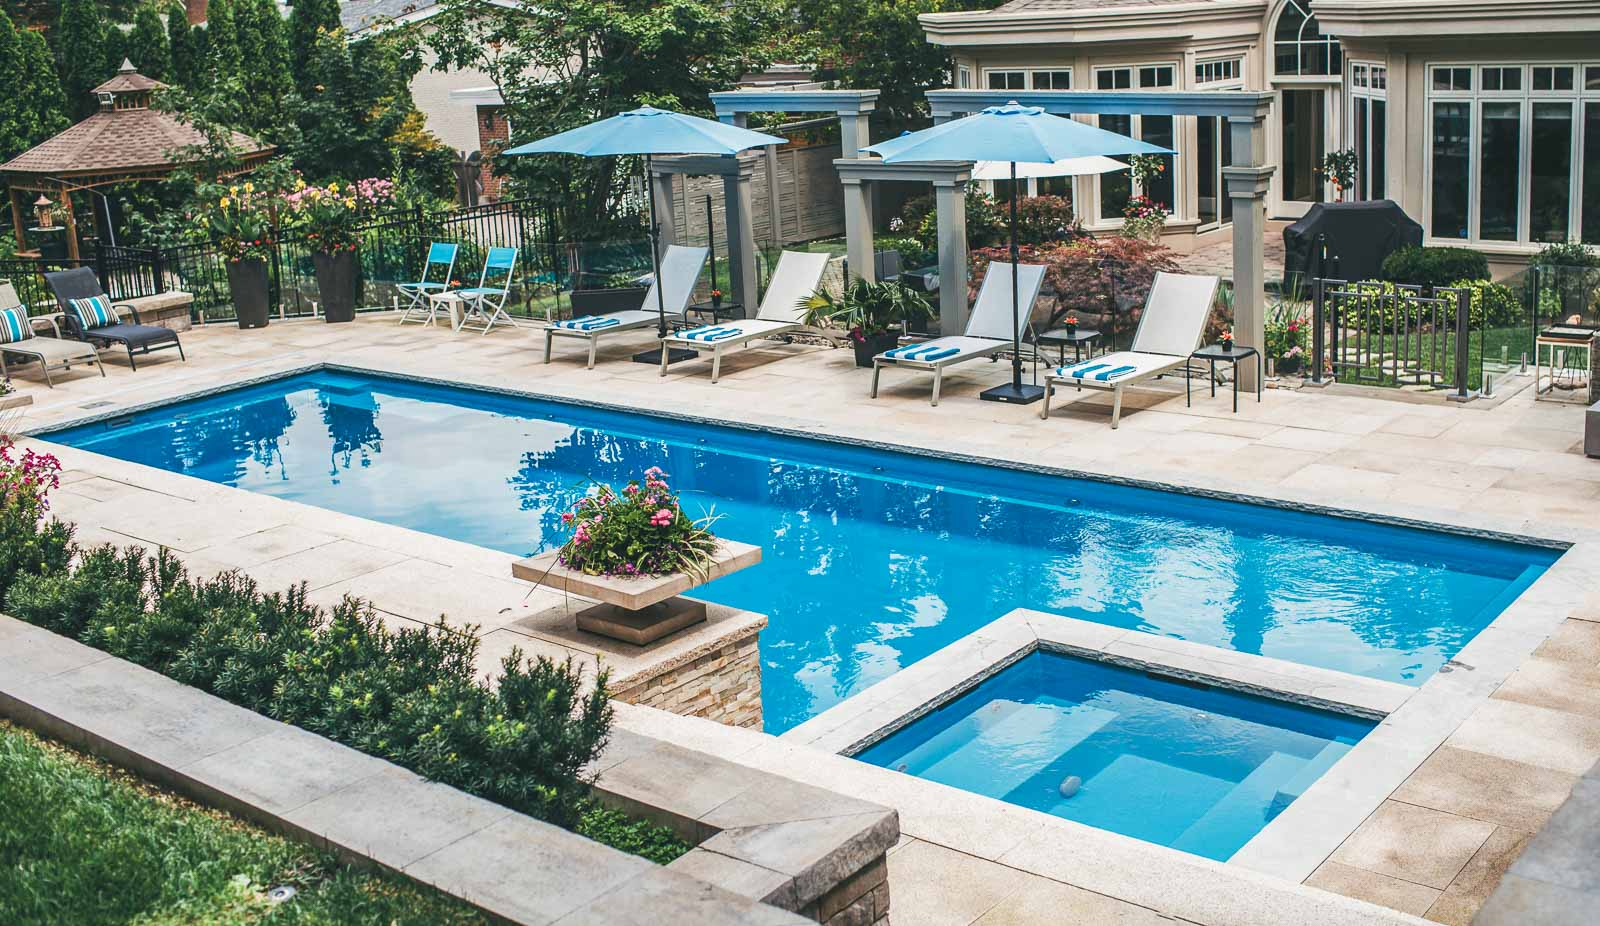 Leisure Pools Ultimate large composite unground pool with built-in spa and tanning ledge